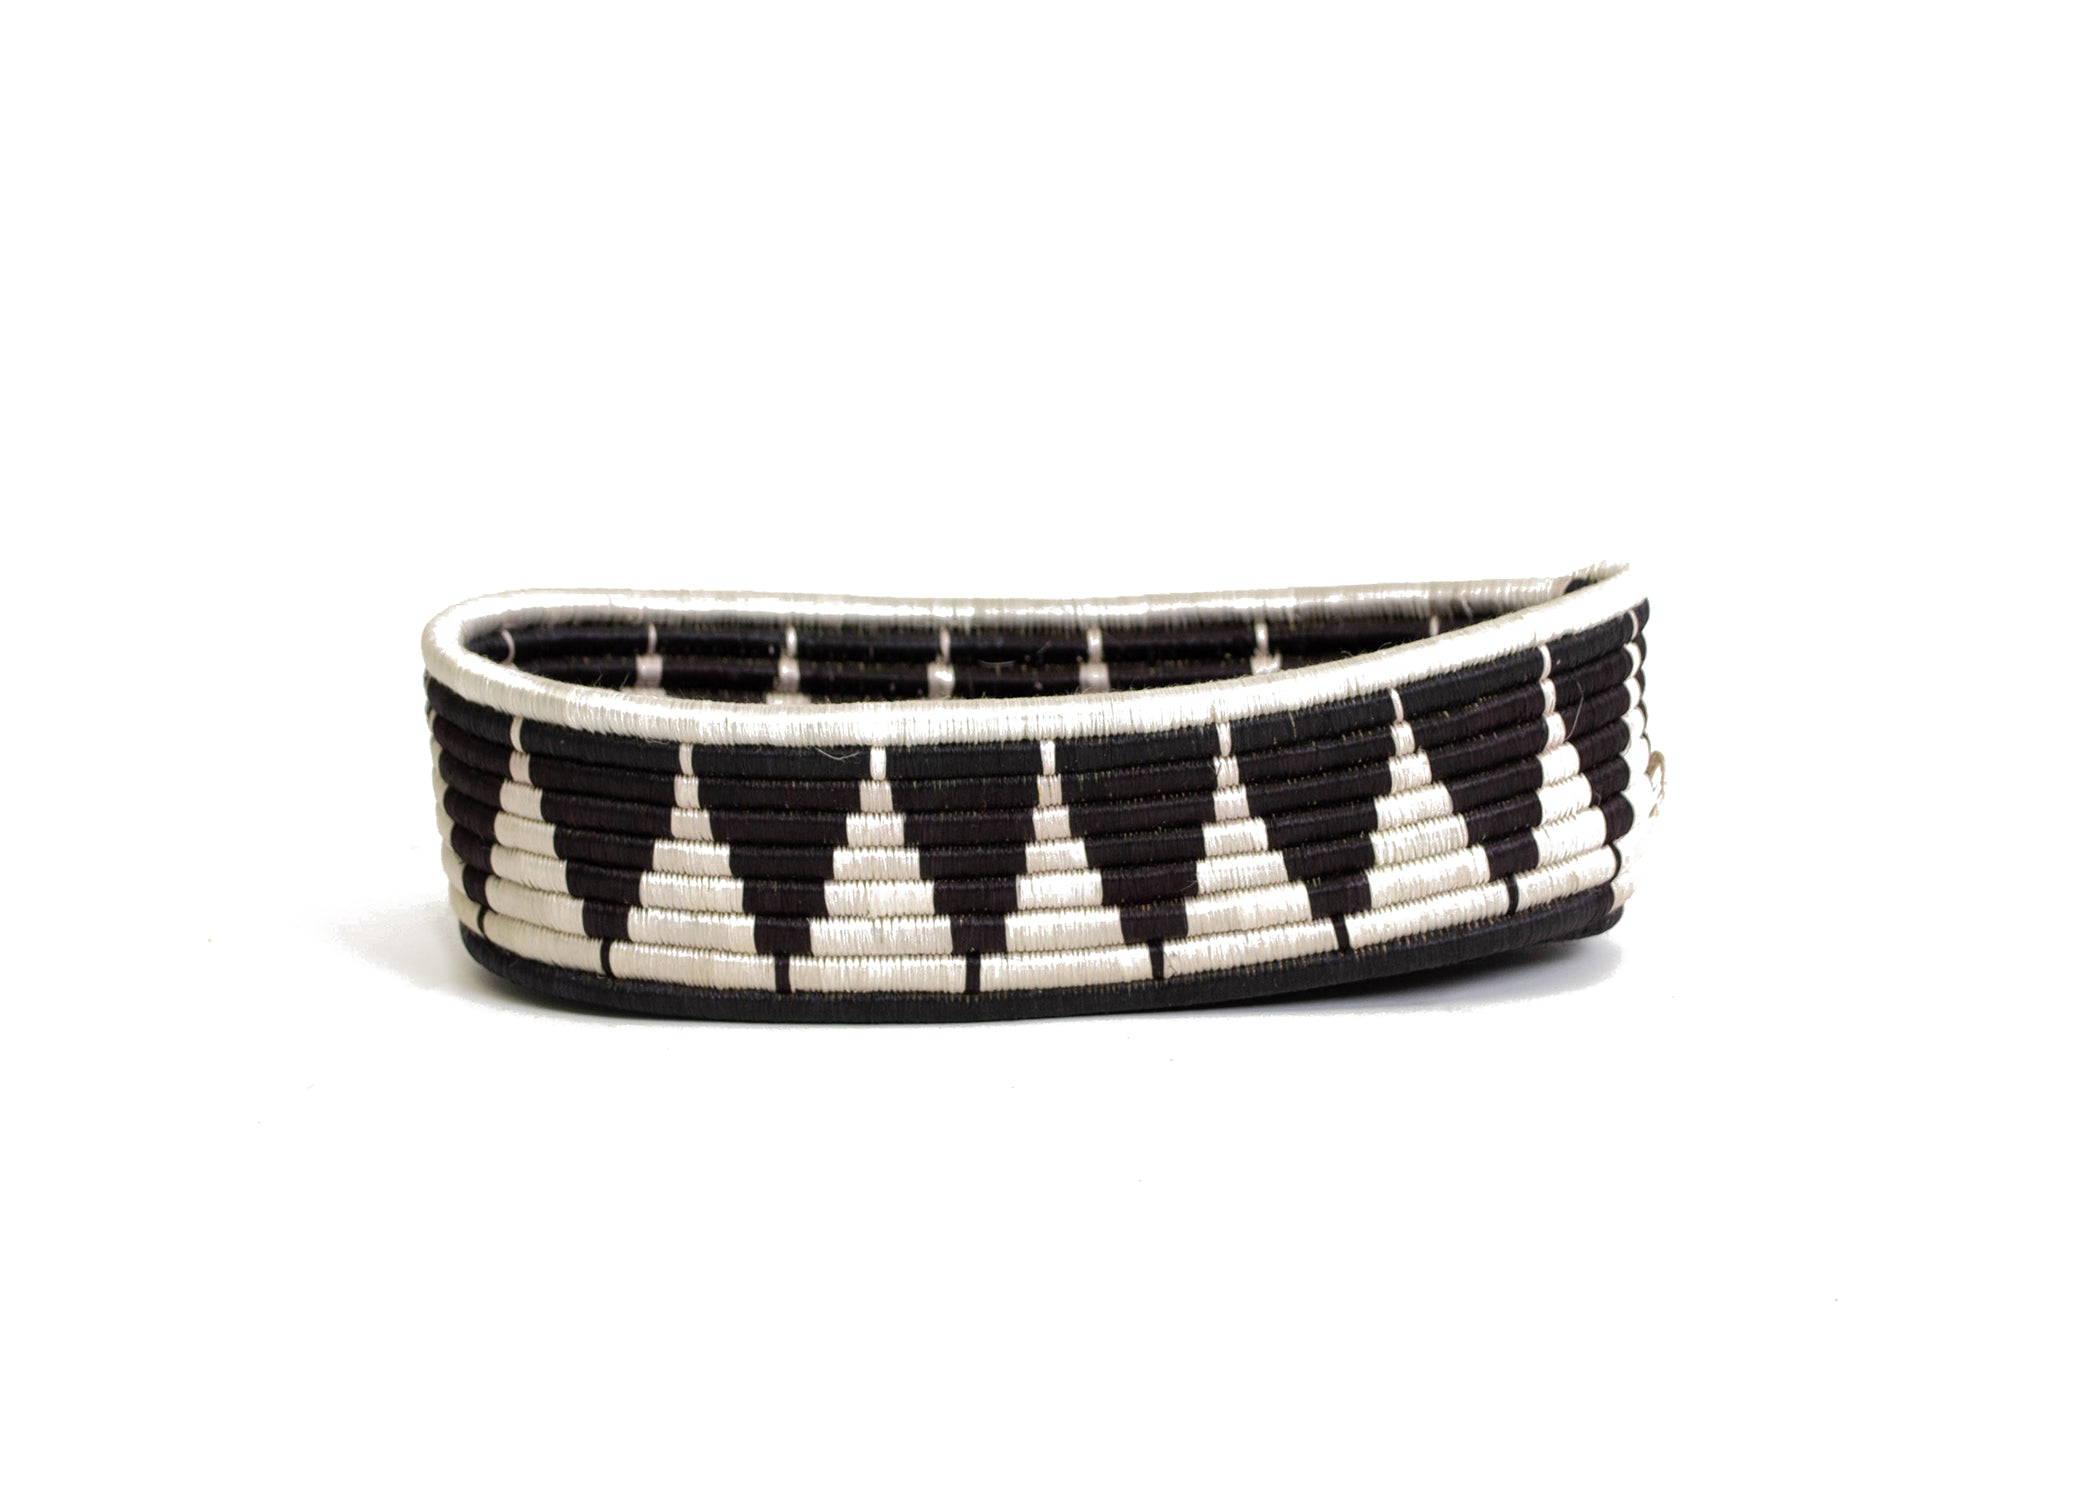 Black + White Tofali Oval Basket - KAZI - Artisan made high quality home decor and wall art